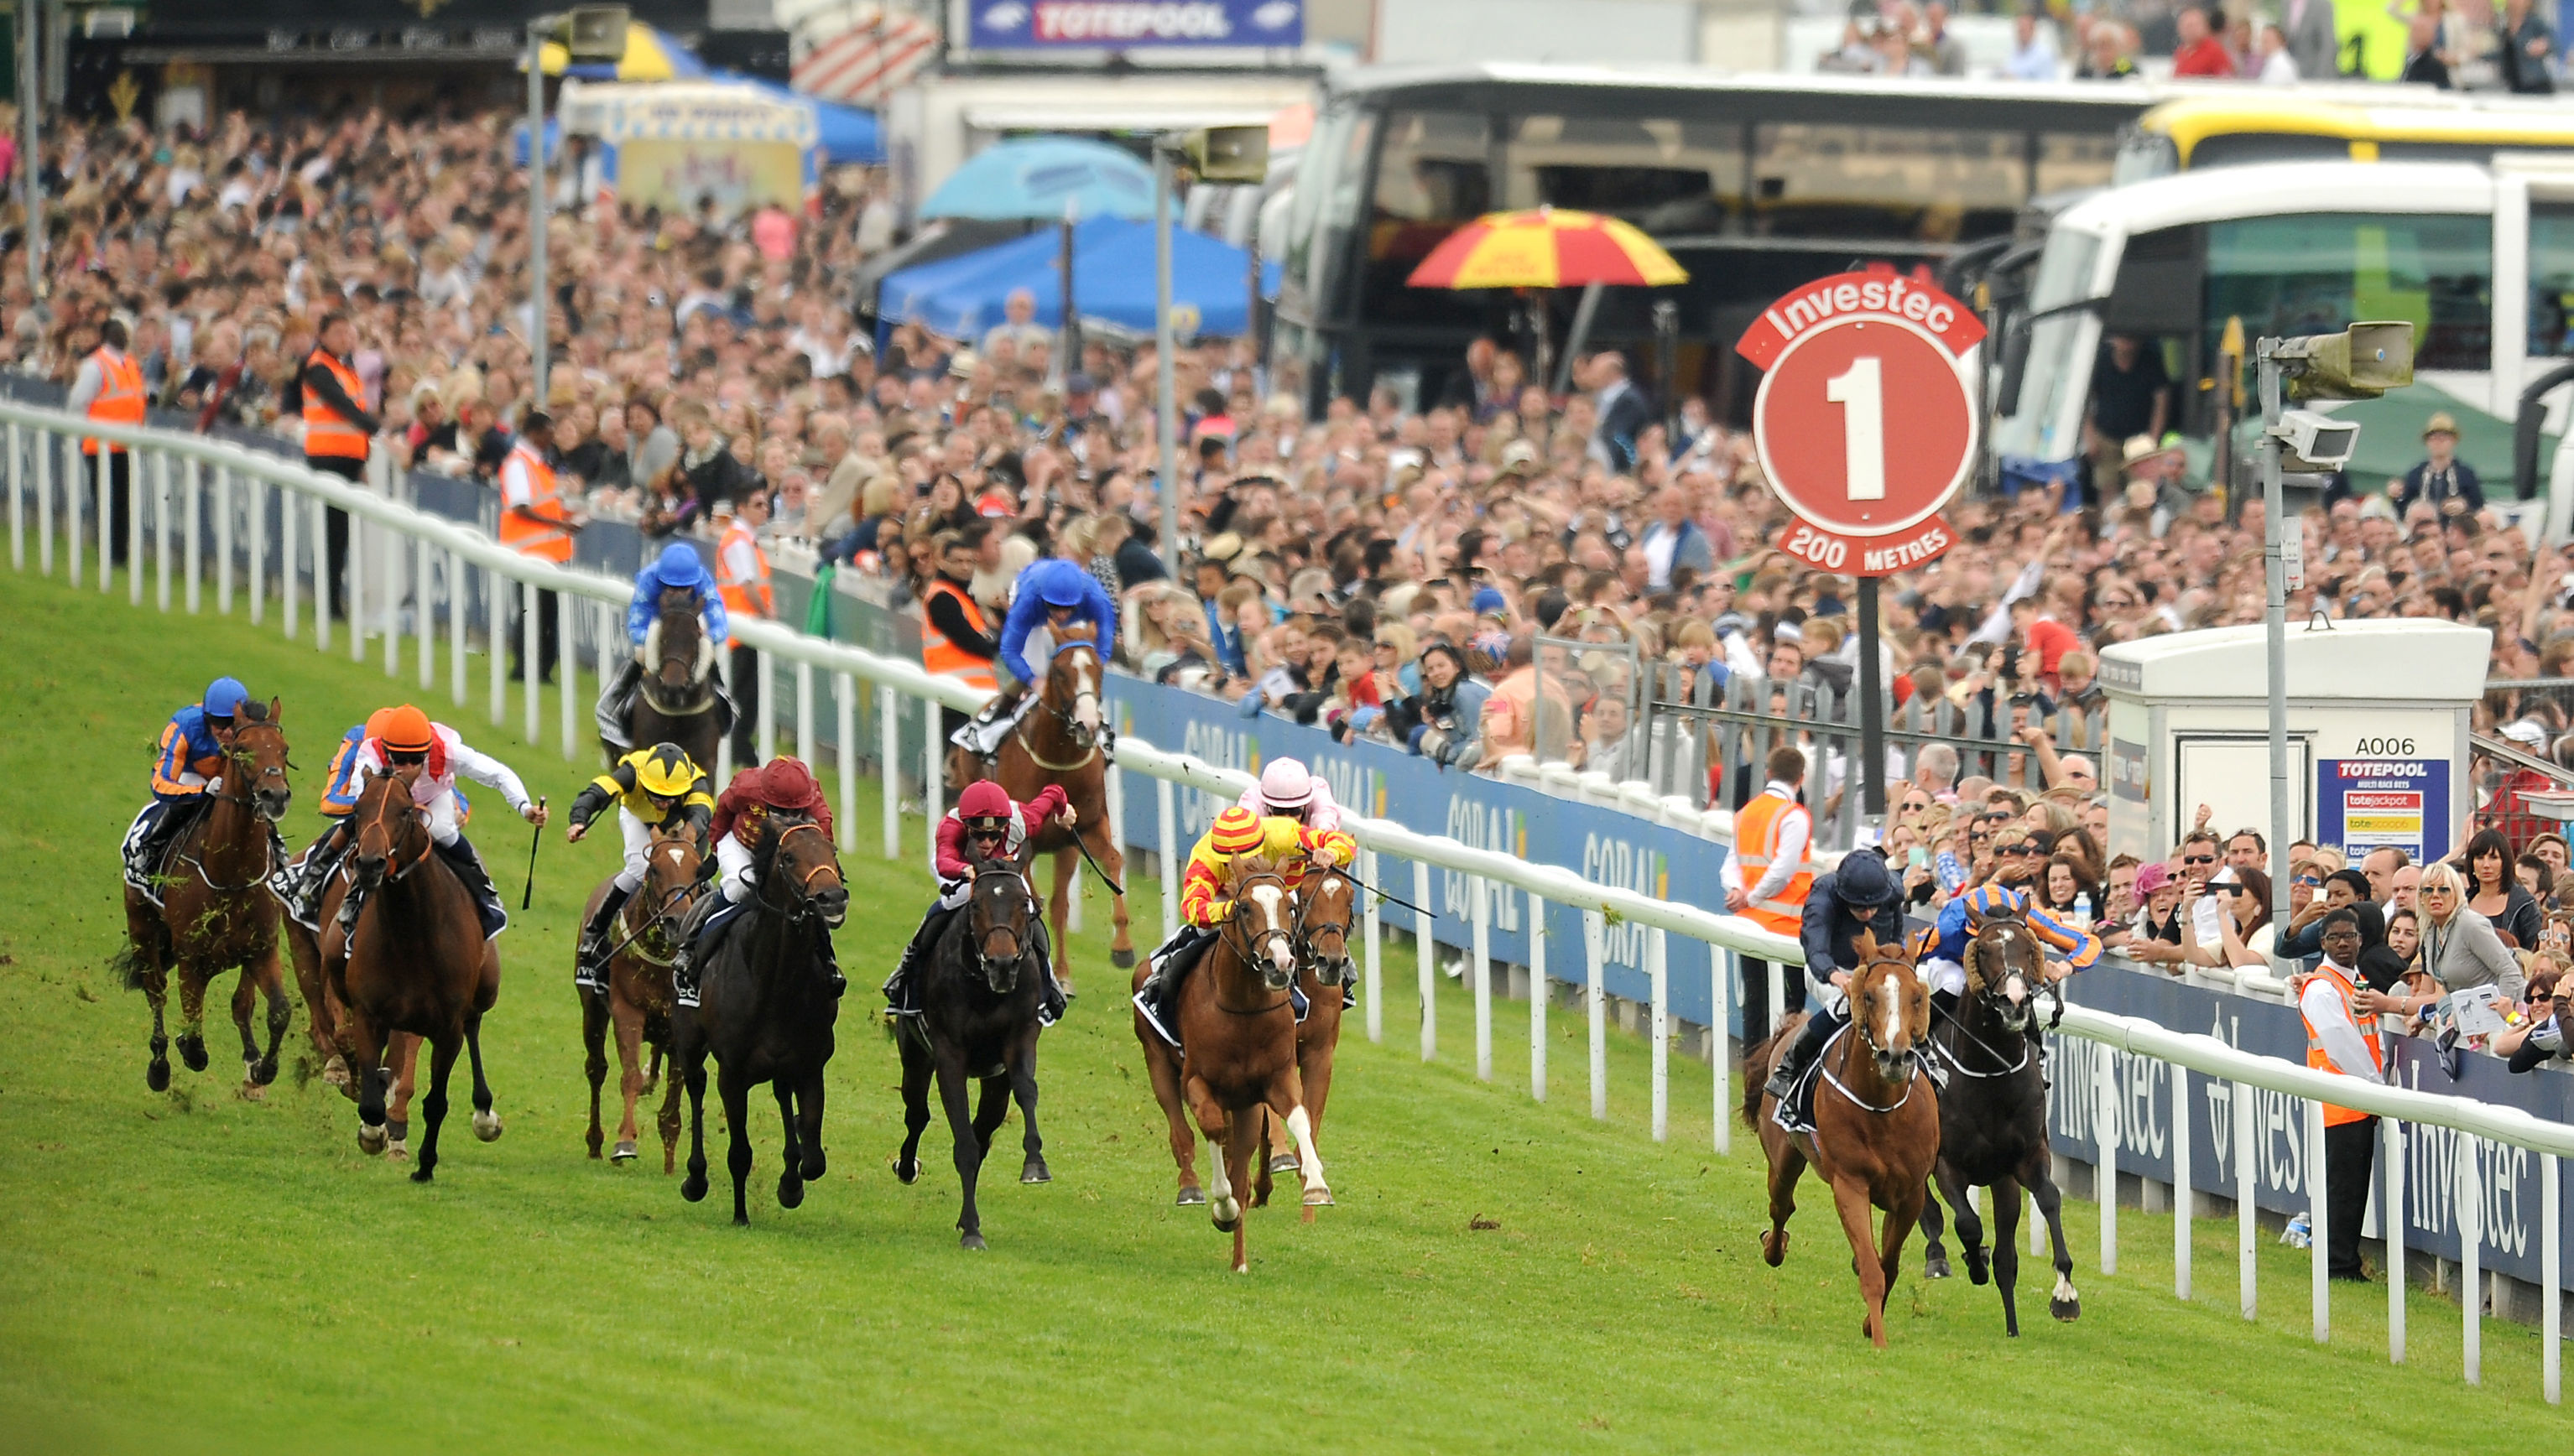 epsom_england_is_the_place_associated_with1538367699.jpg image